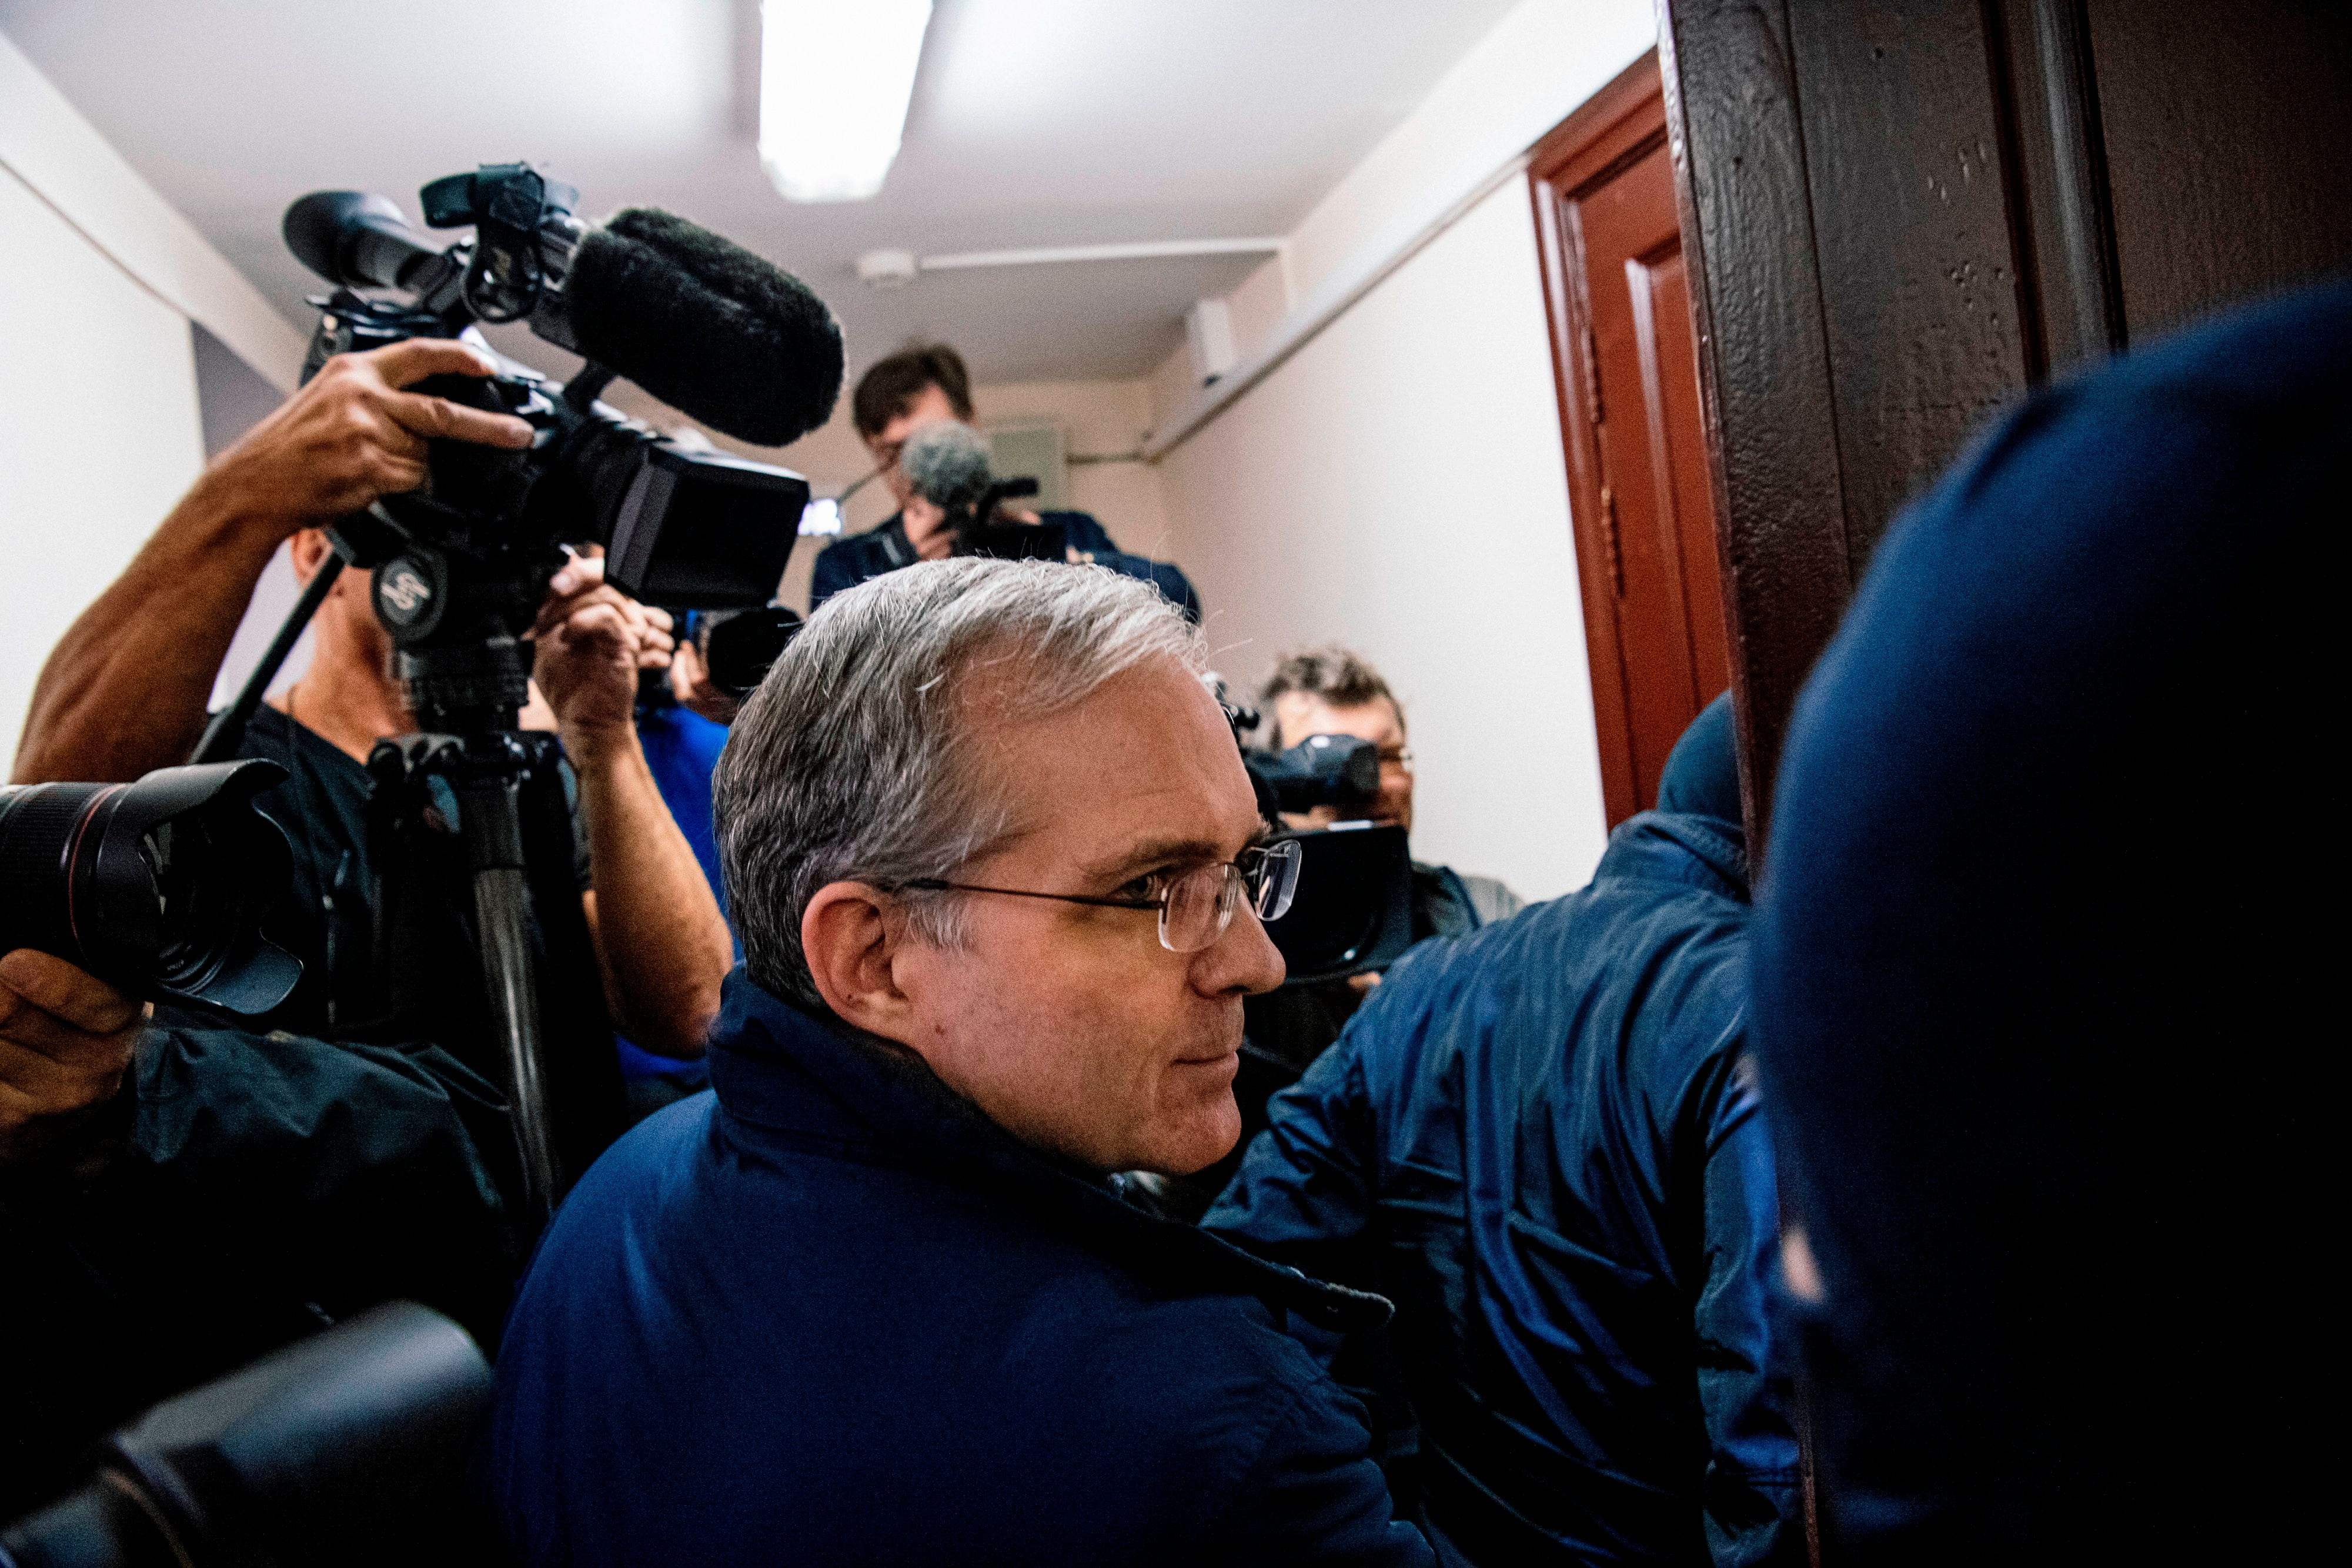 Paul Whelan, a former US Marine accused of espionage and arrested in Russia in December 2018, is escorted for a hearing to decide to extend his detention at the Lefortovo Court in Moscow on October 24, 2019.